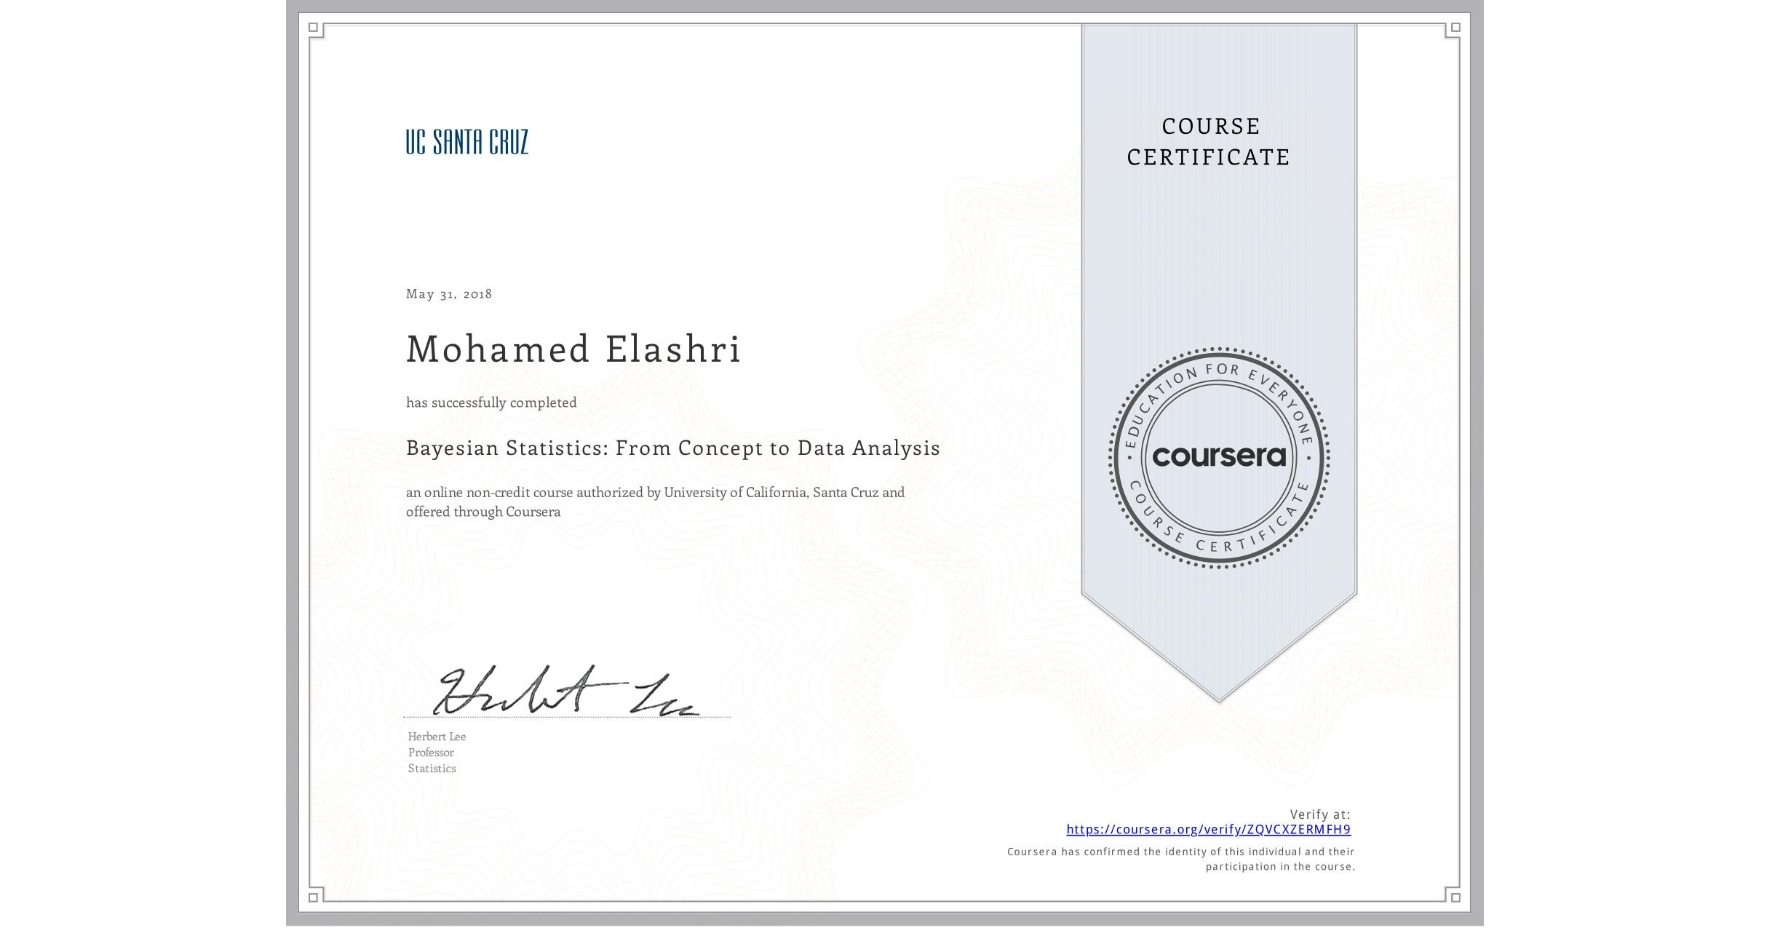 View certificate for Mohamed Elashri, Bayesian Statistics: From Concept to Data Analysis, an online non-credit course authorized by University of California, Santa Cruz and offered through Coursera